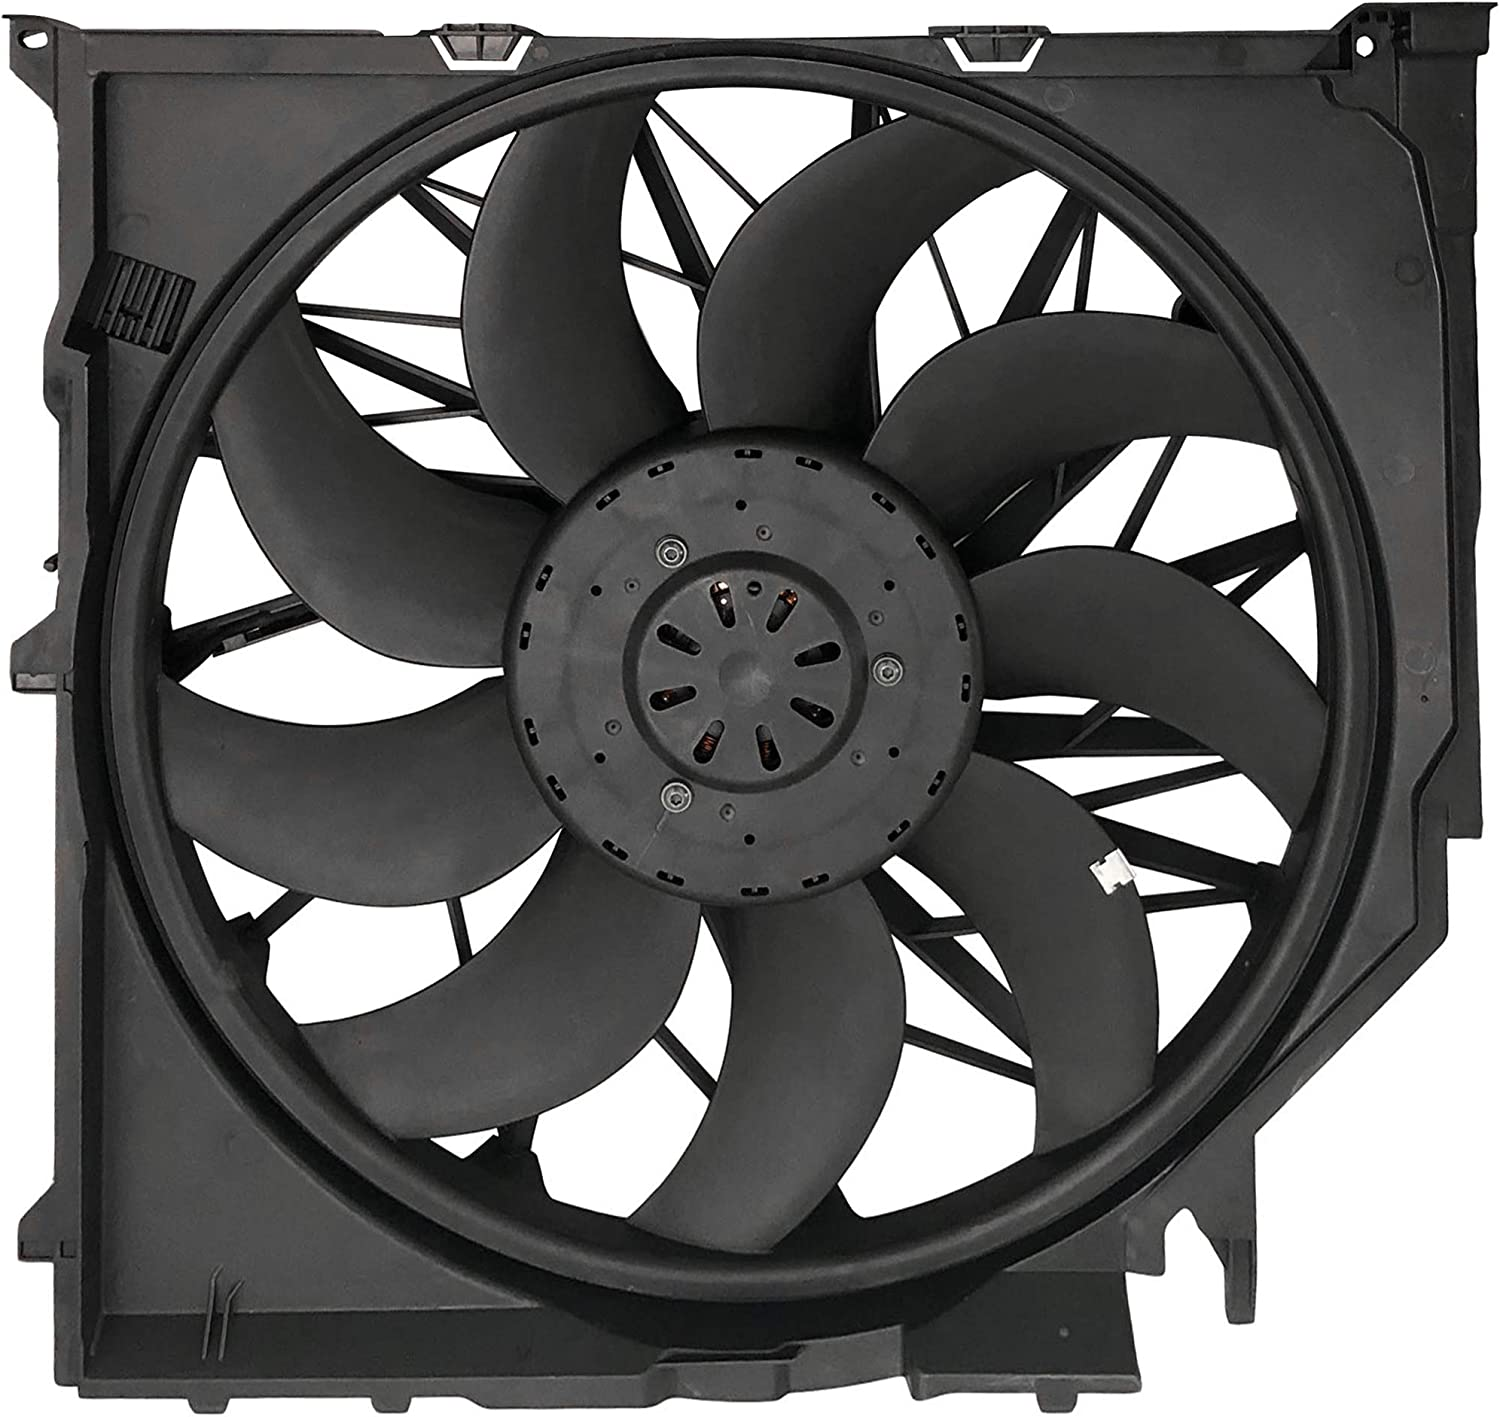 BOXI 600W Brushless Cooling Fan Assembly For BMW X3 E83 2004 2005 2006 2007 2008 2009 2010 OE# 17113442089